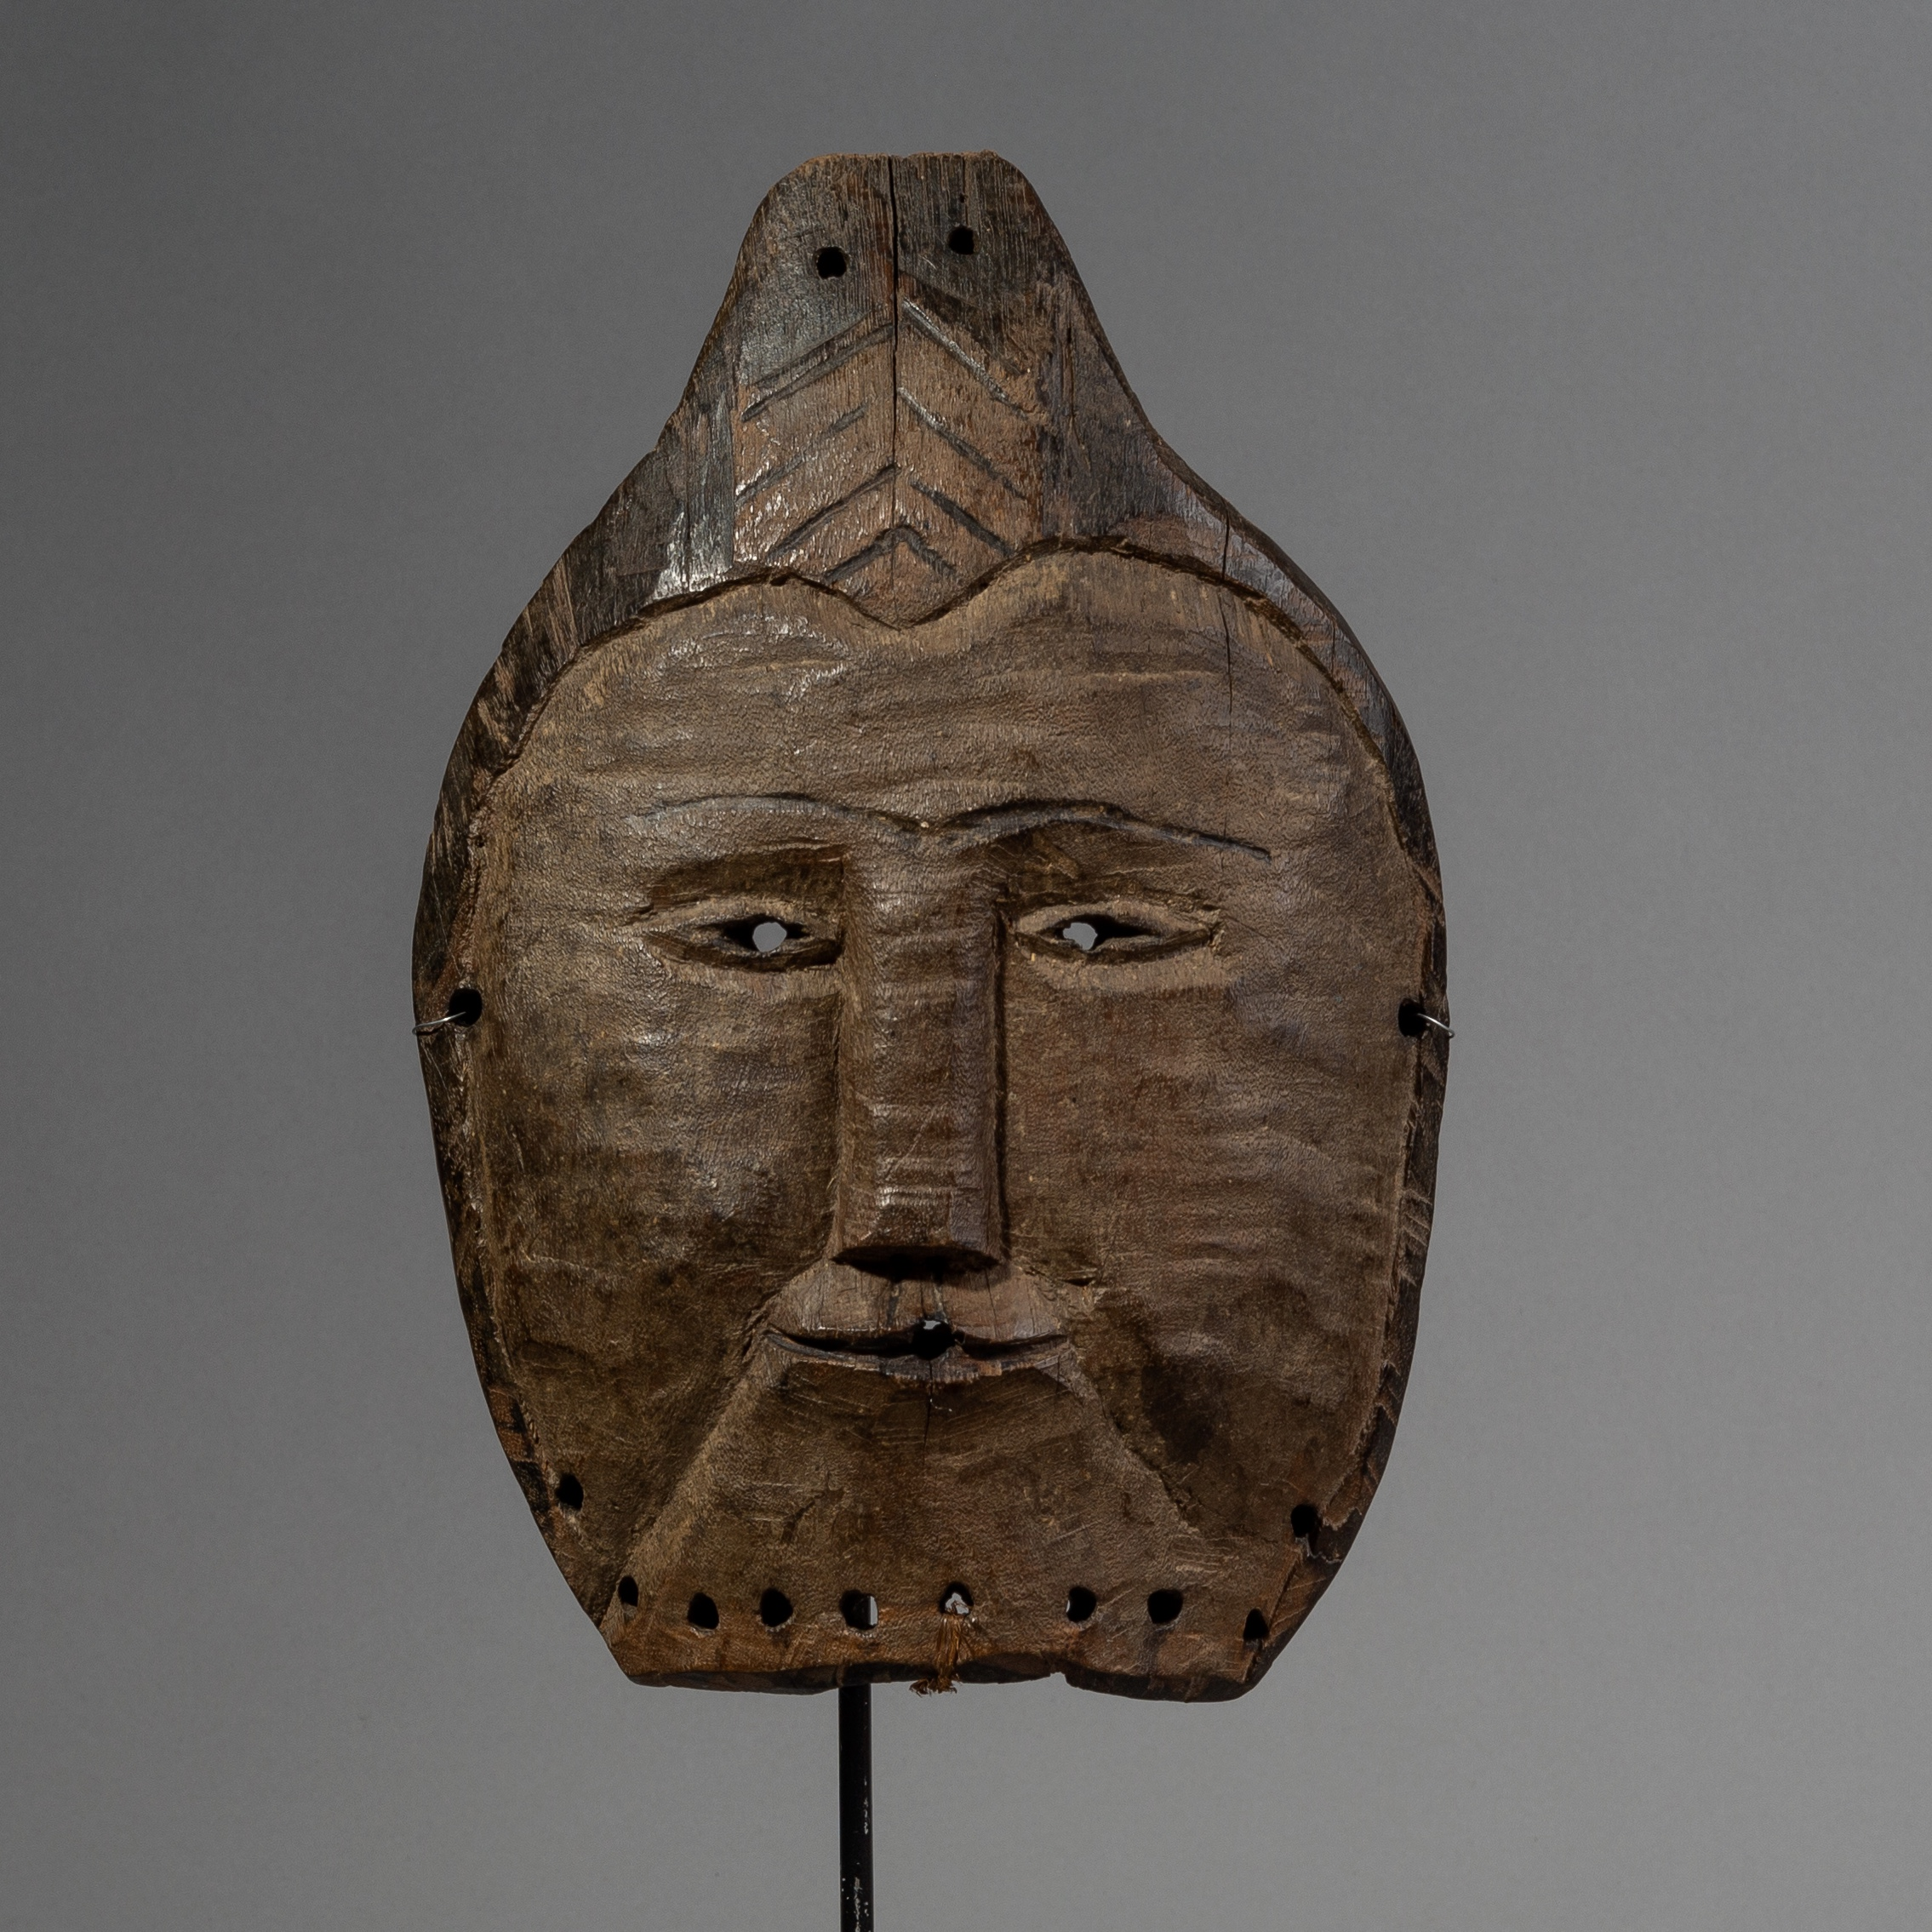 A BUDDHA LIKE MASK FROM THE TABWA TRIBE OF THE CONGO ( No 2169 )